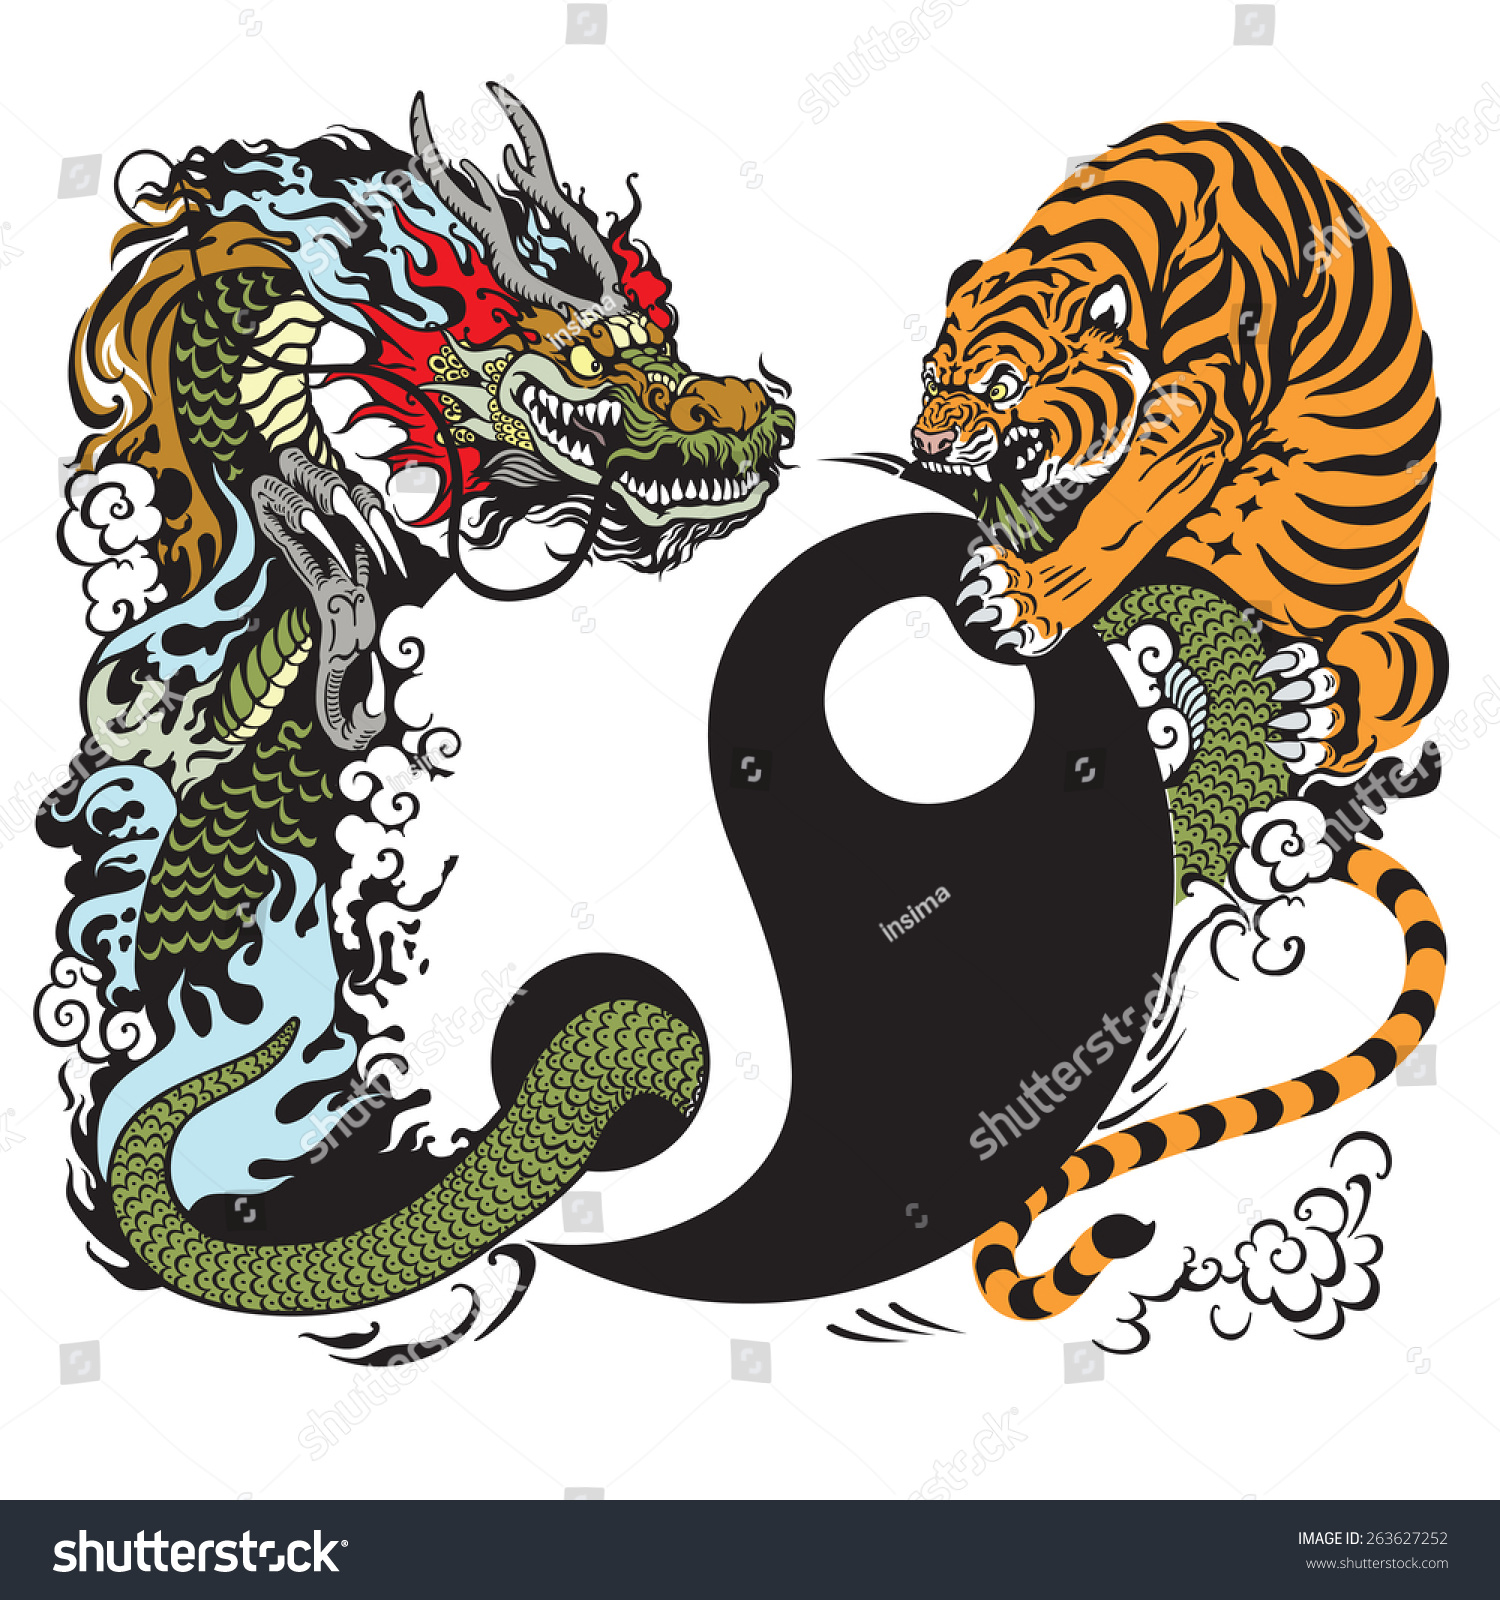 yin yang symbol dragon tiger fight stock vector 263627252 shutterstock. Black Bedroom Furniture Sets. Home Design Ideas